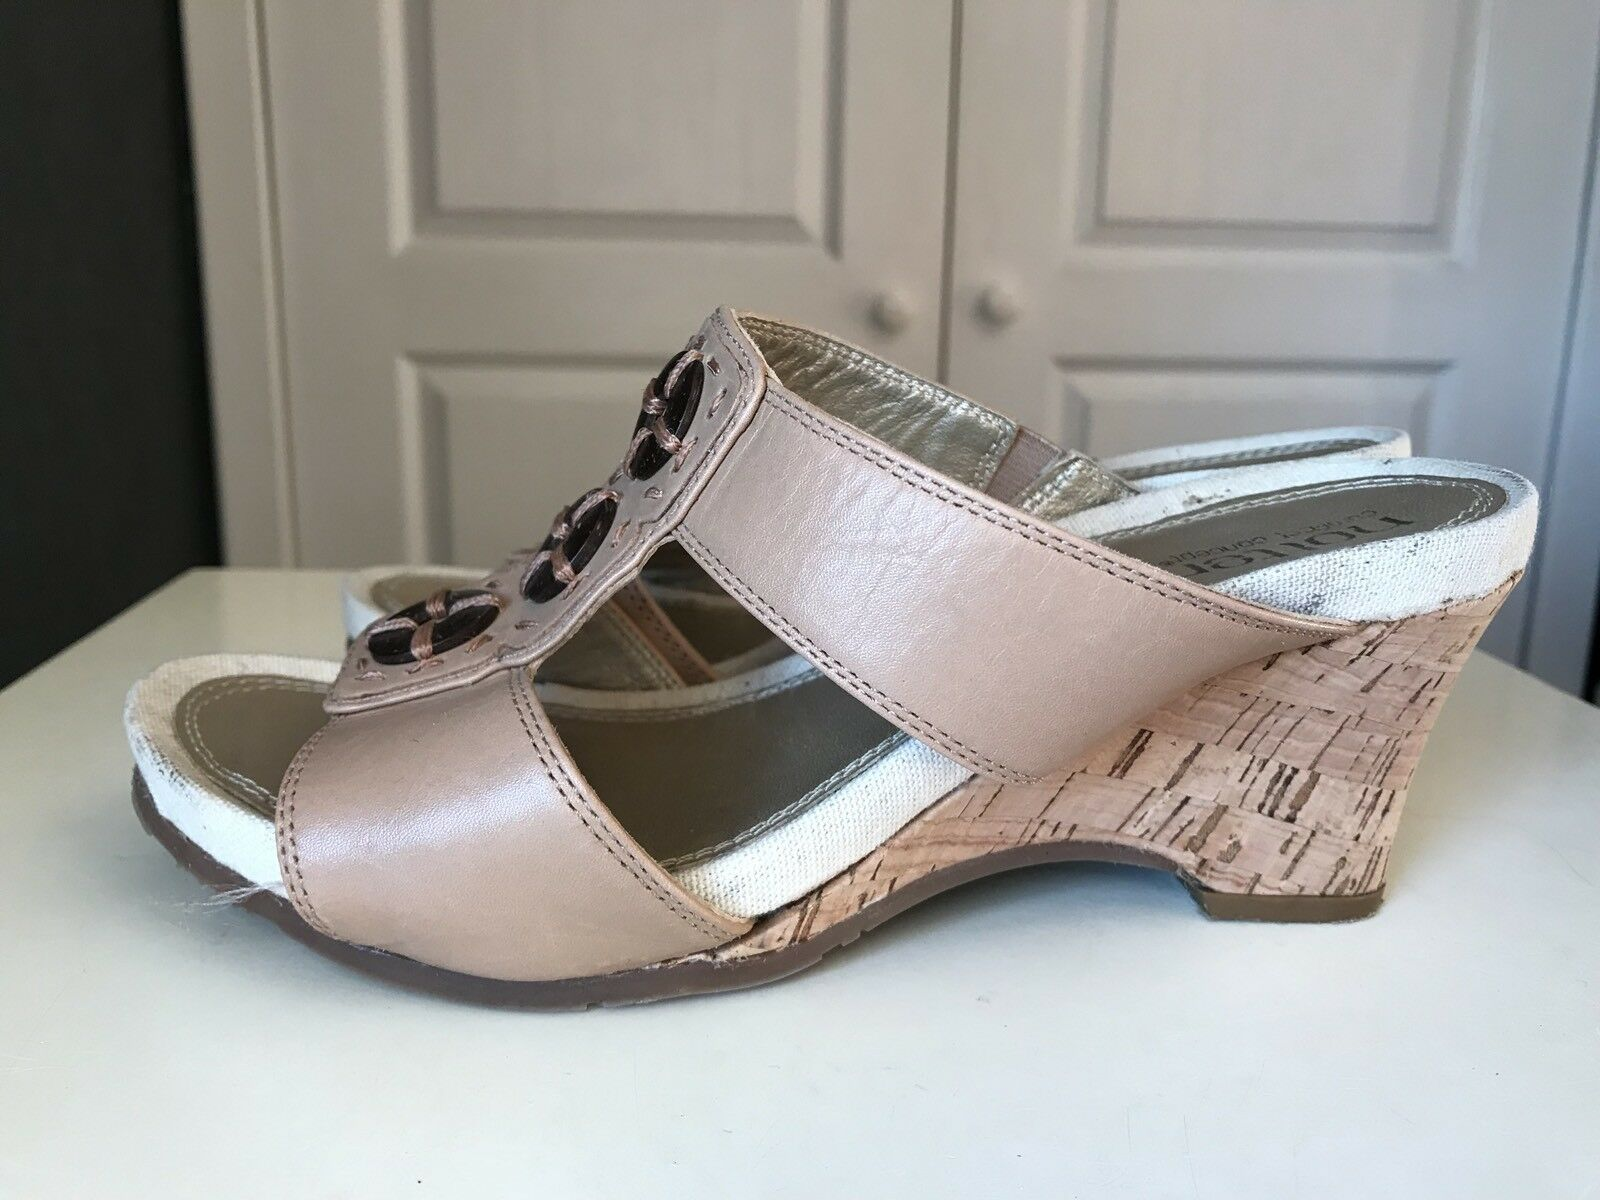 HOTTER Tan Beige Leather Women Platform Sandal High Heel shoes Size 3 36